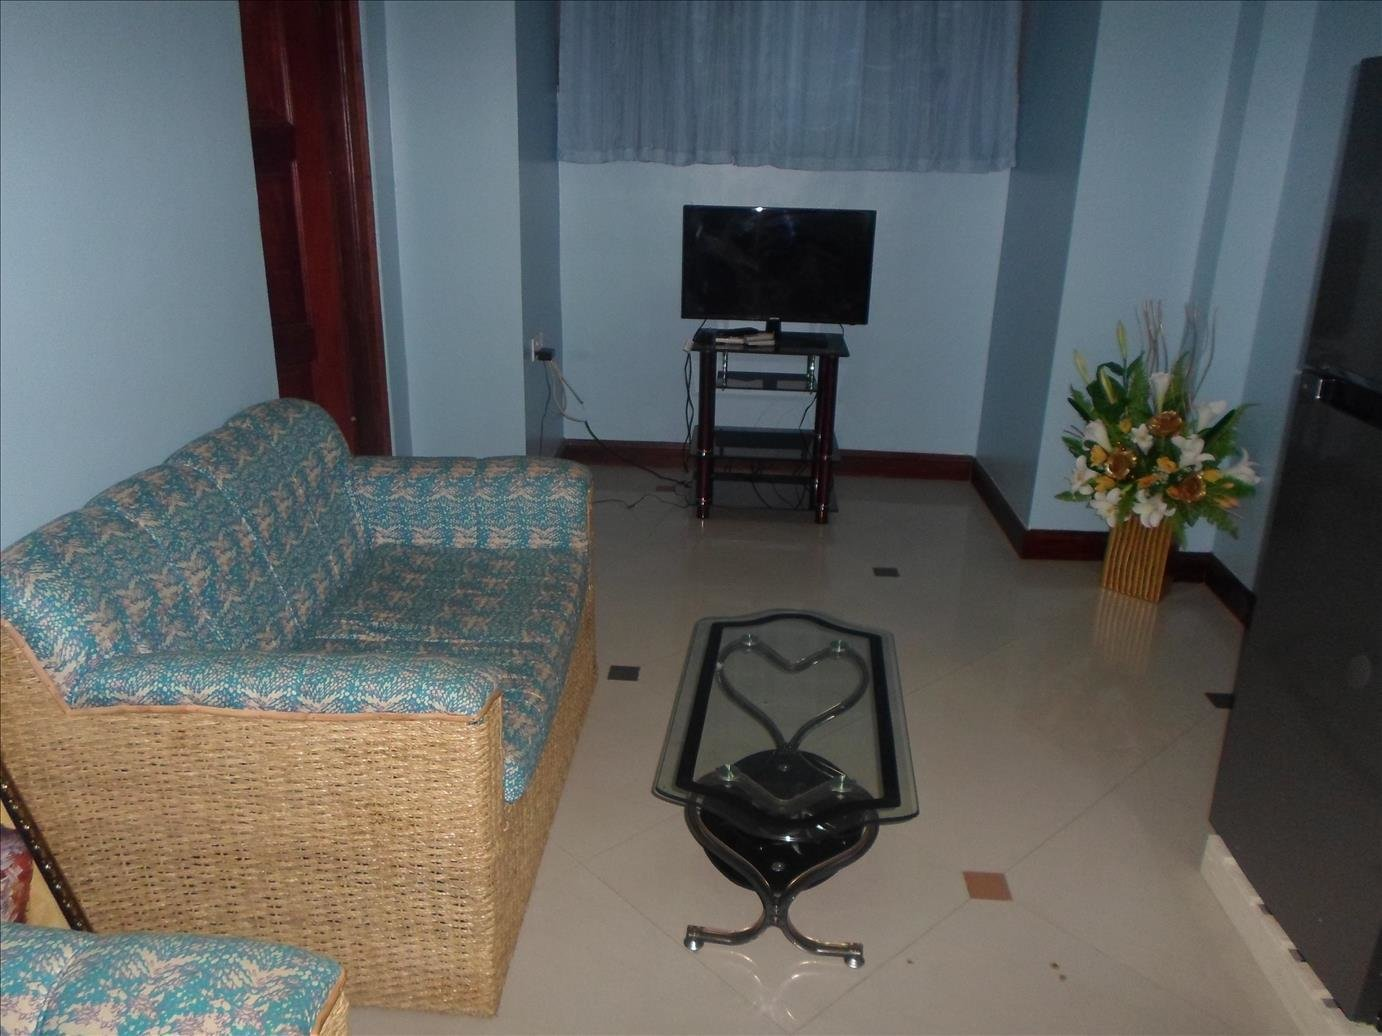 Best 1 2 Bedroom Furnished Apartment For Rent Sellrent Ghana With Pictures Original 1024 x 768